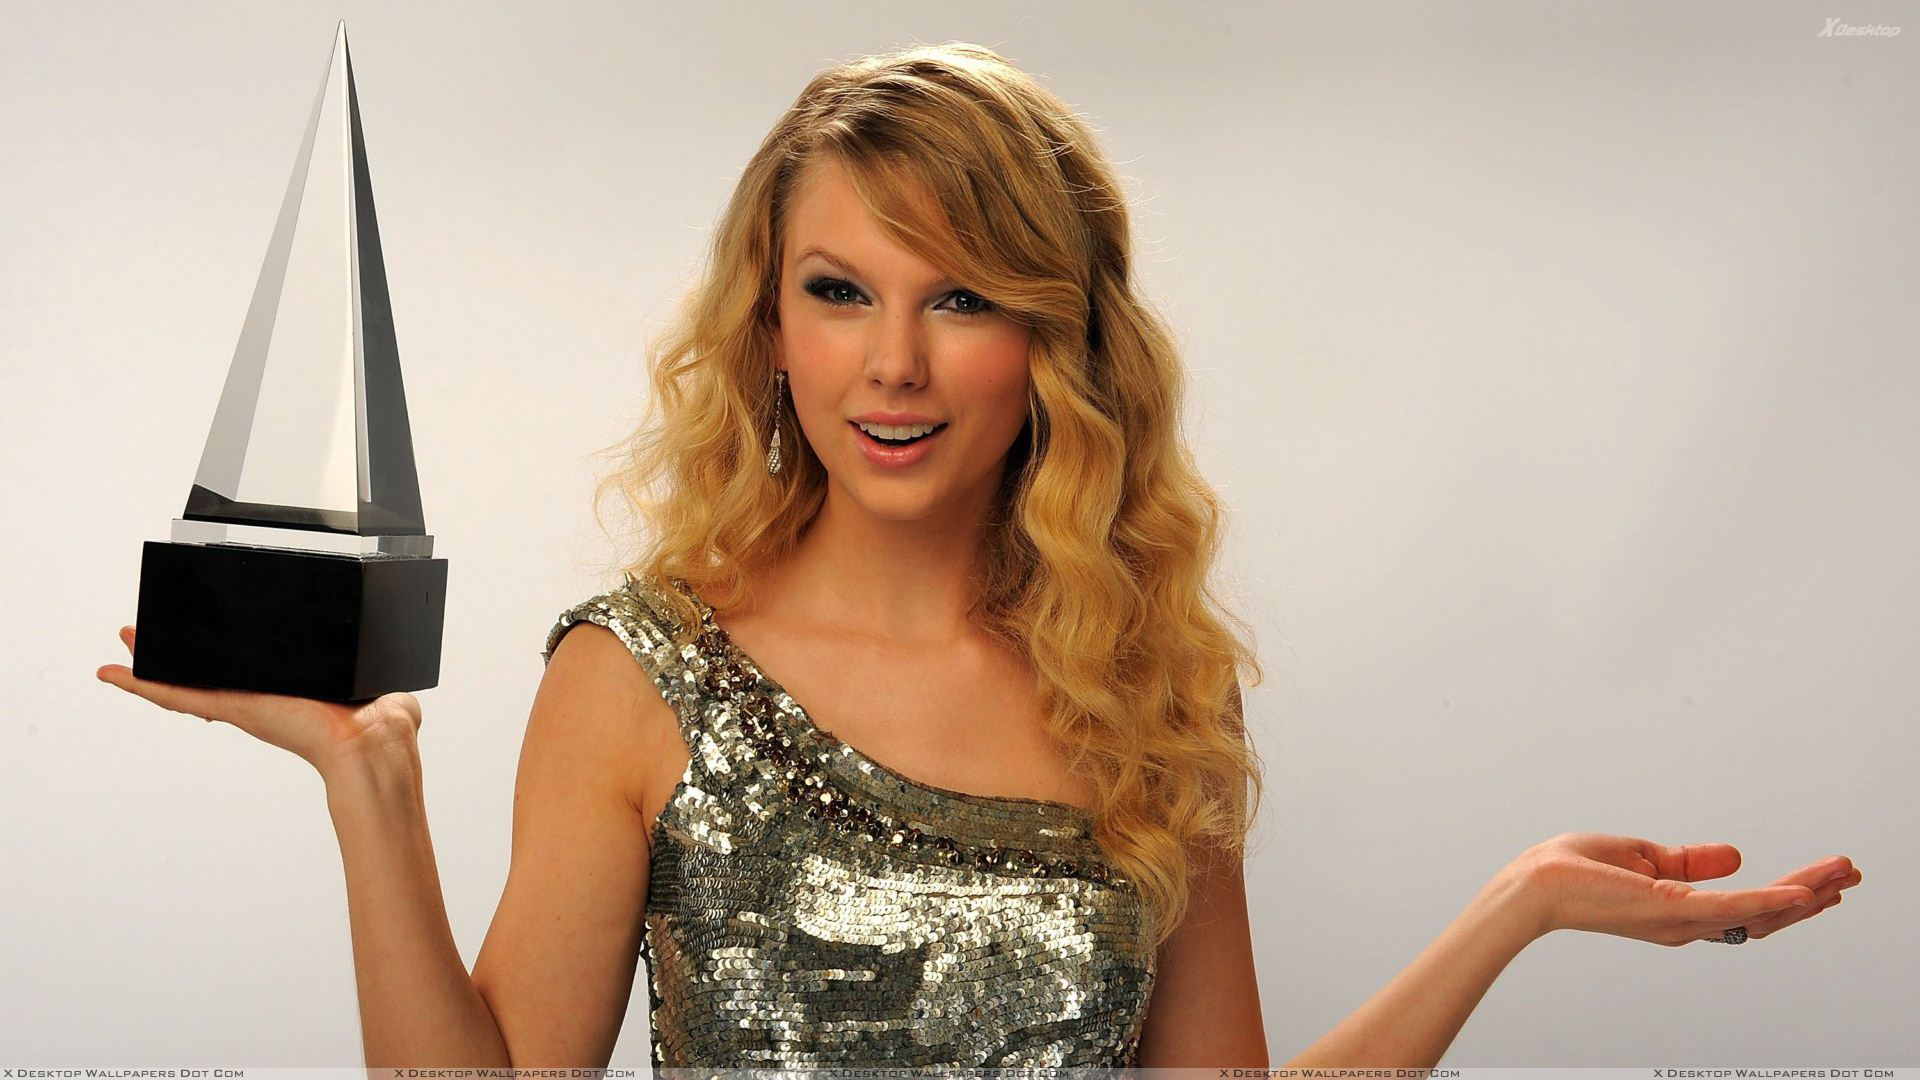 Taylor Swift Wallpapers Photos Images in HD